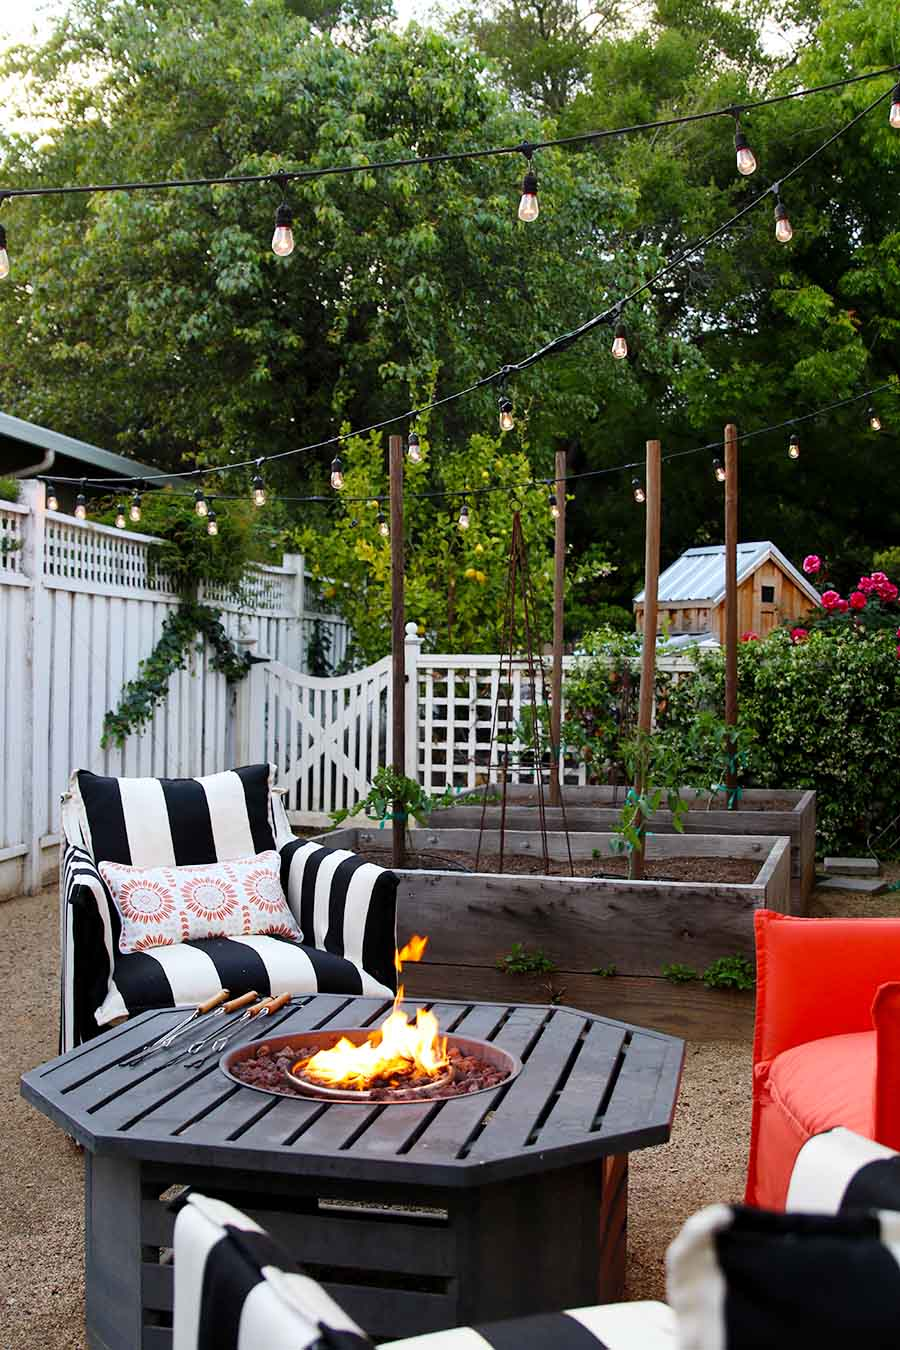 Entertaining Outdoors Using String Lights - Summer Patio by Modern Glam